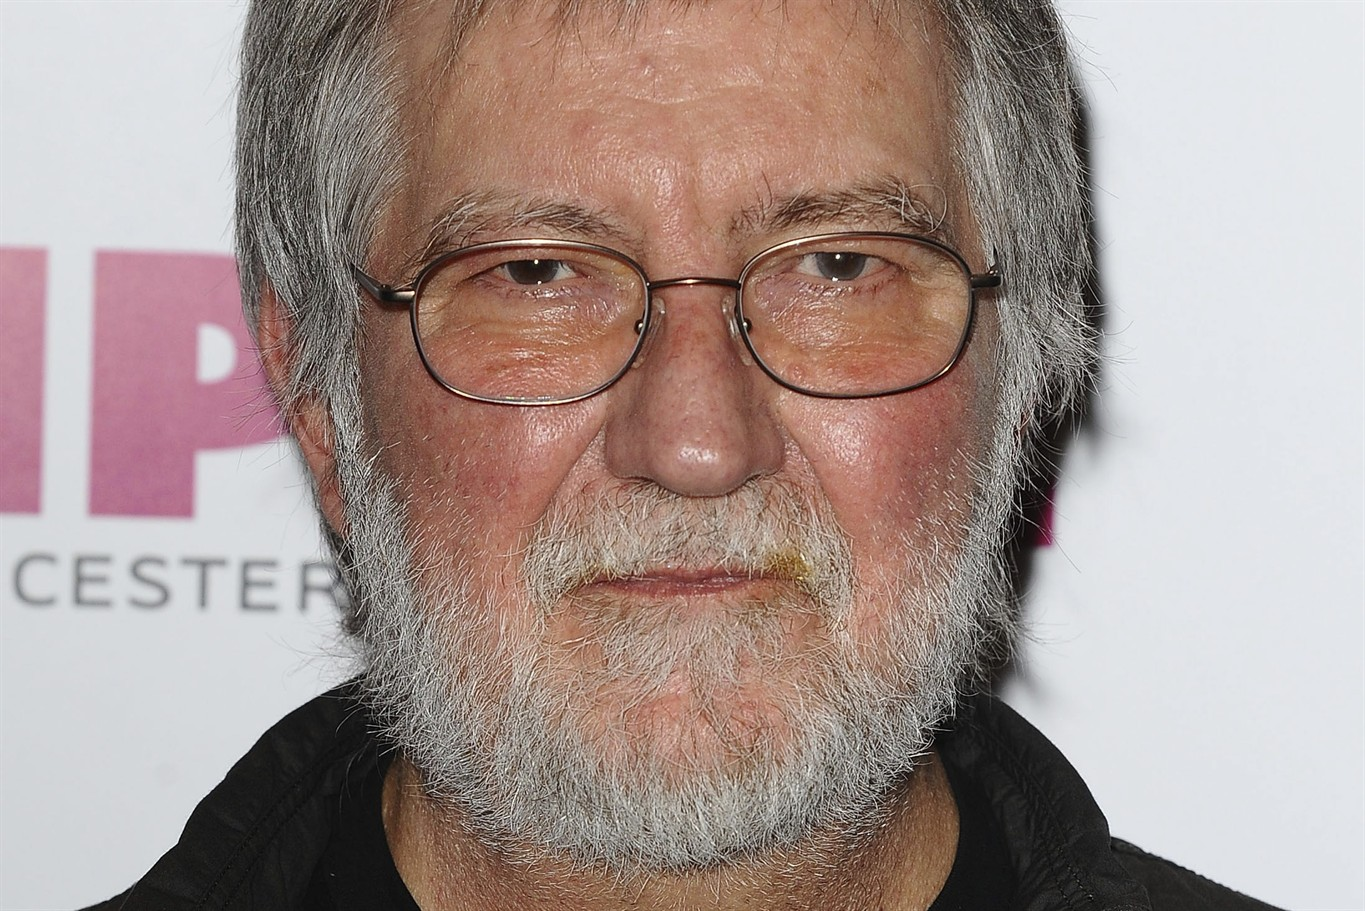 Tobe Hooper, director of The Texas Chain Saw Massacre, dies aged 74